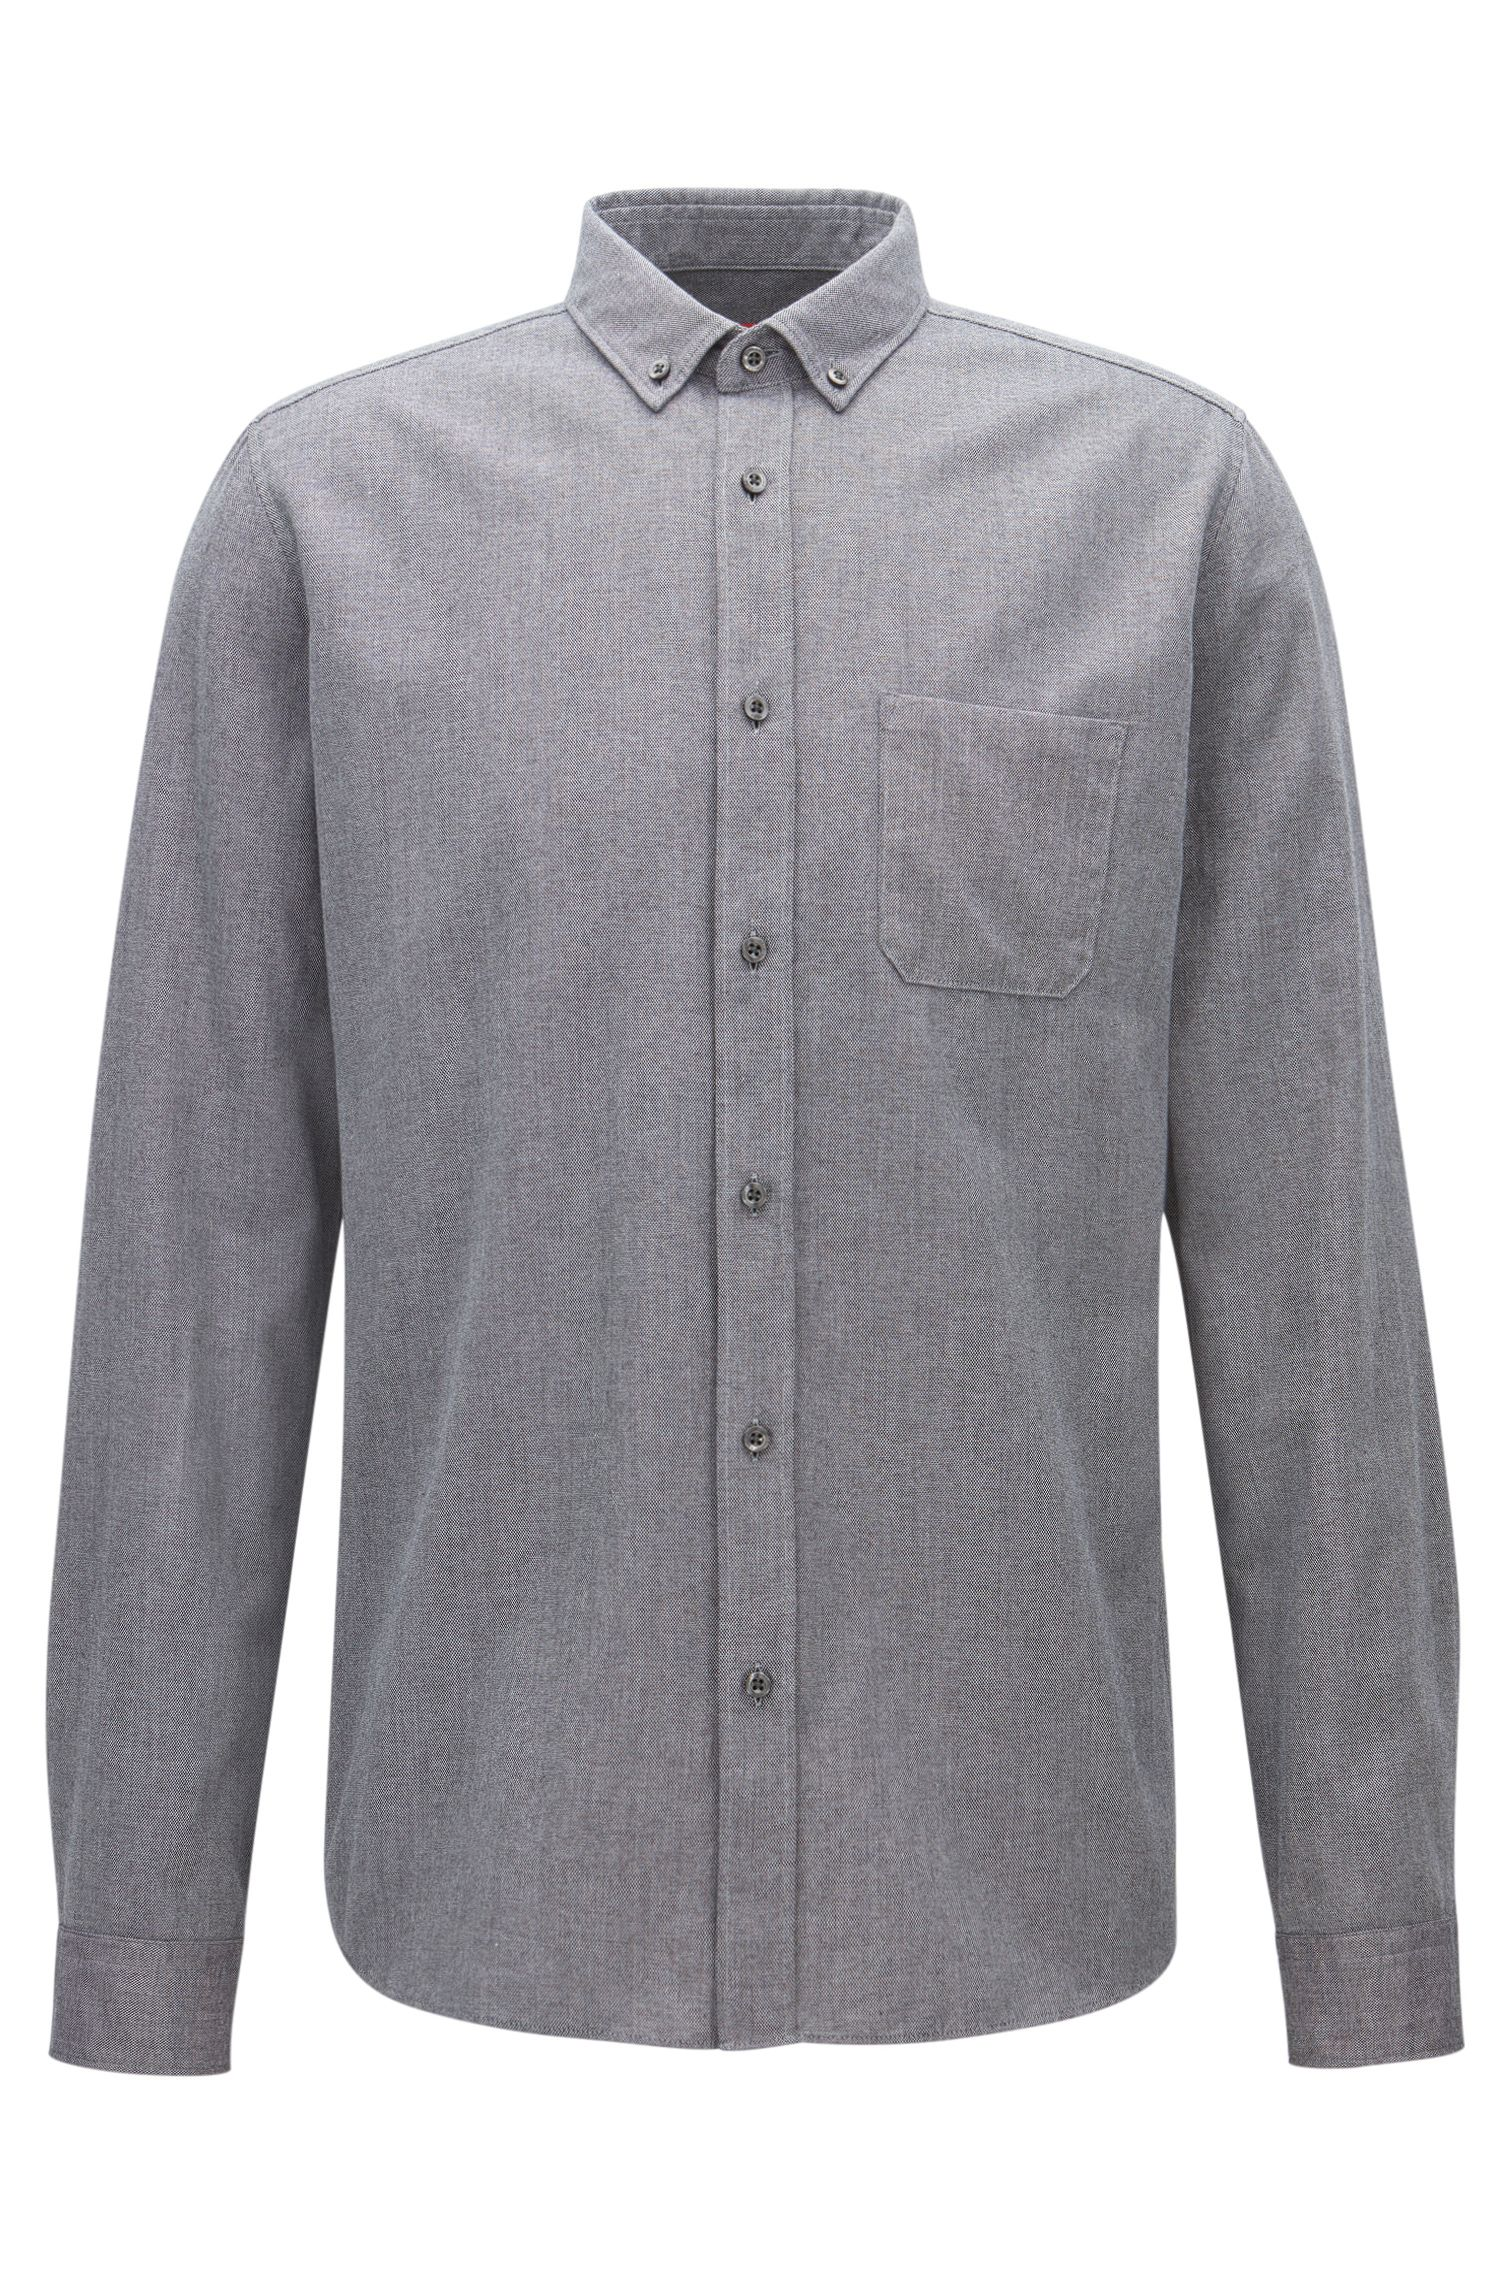 Relaxed-fit mouliné shirt in mid-weight corduroy